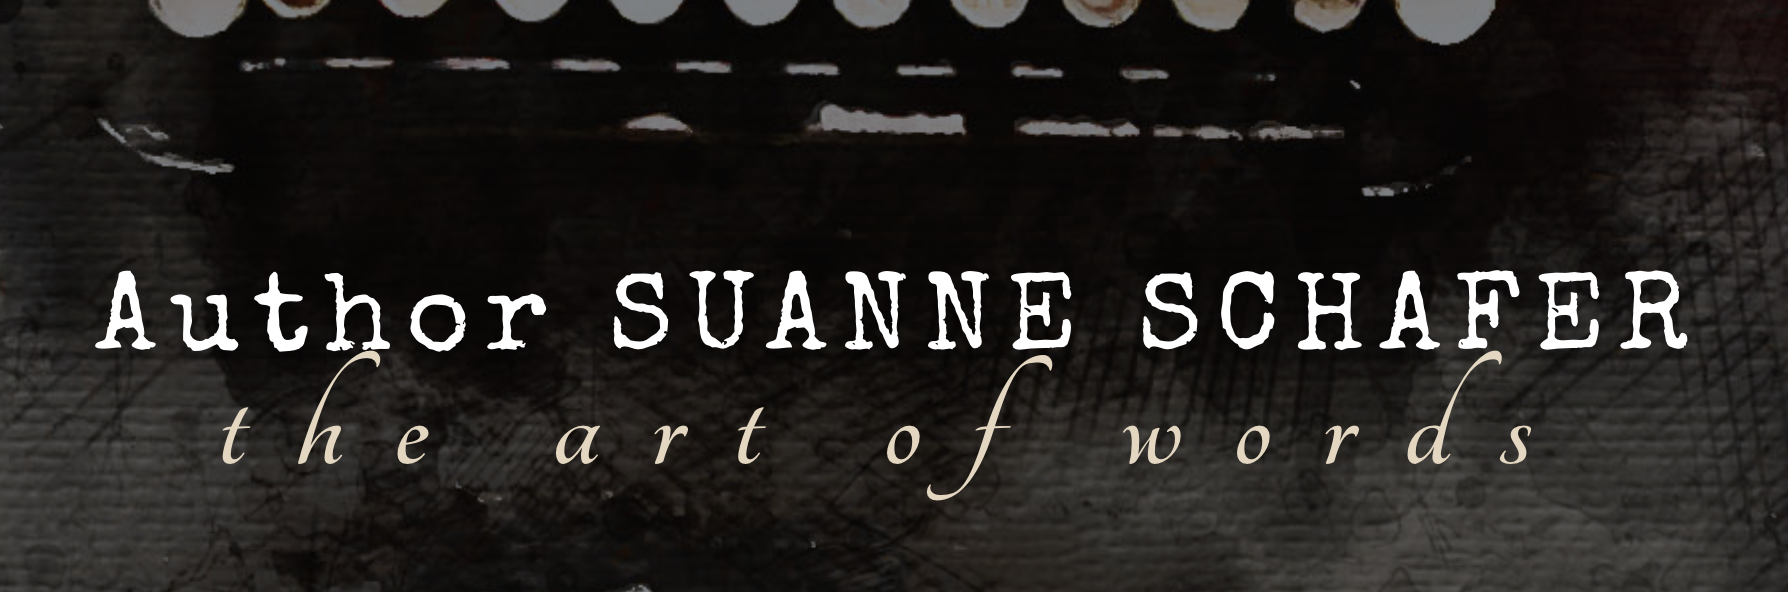 Suanne Schafer Author